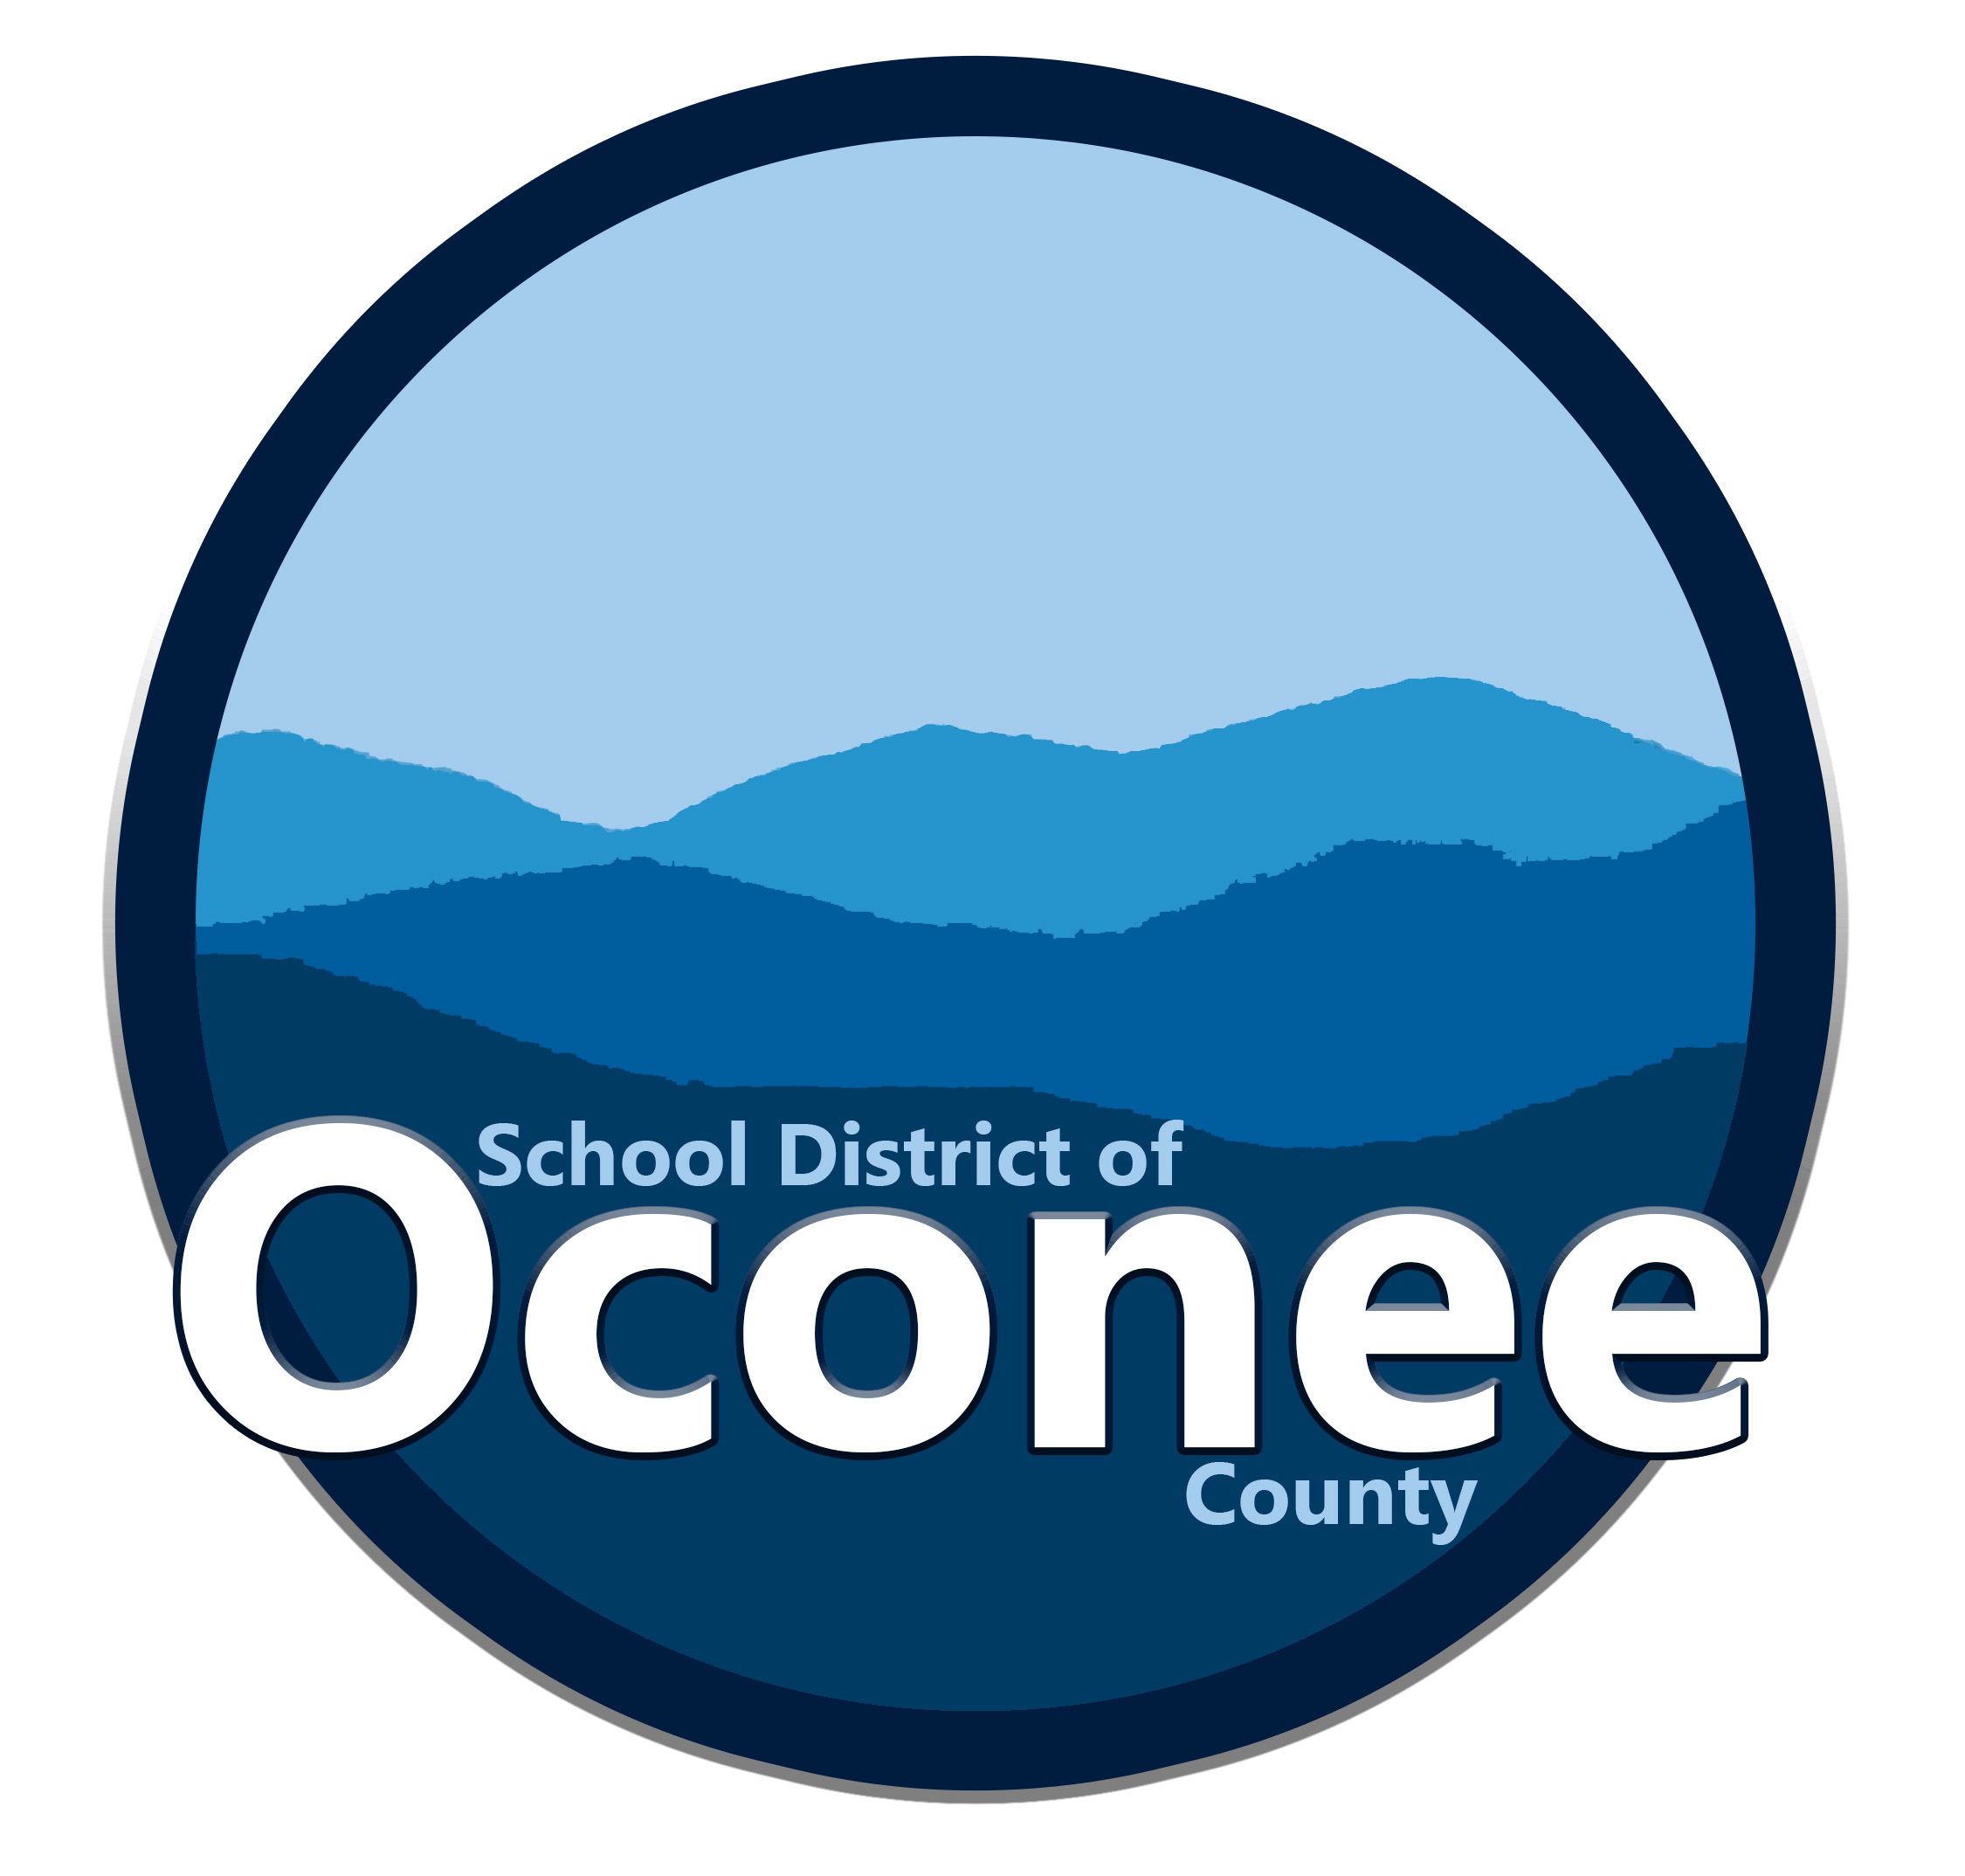 School District of Oconee County